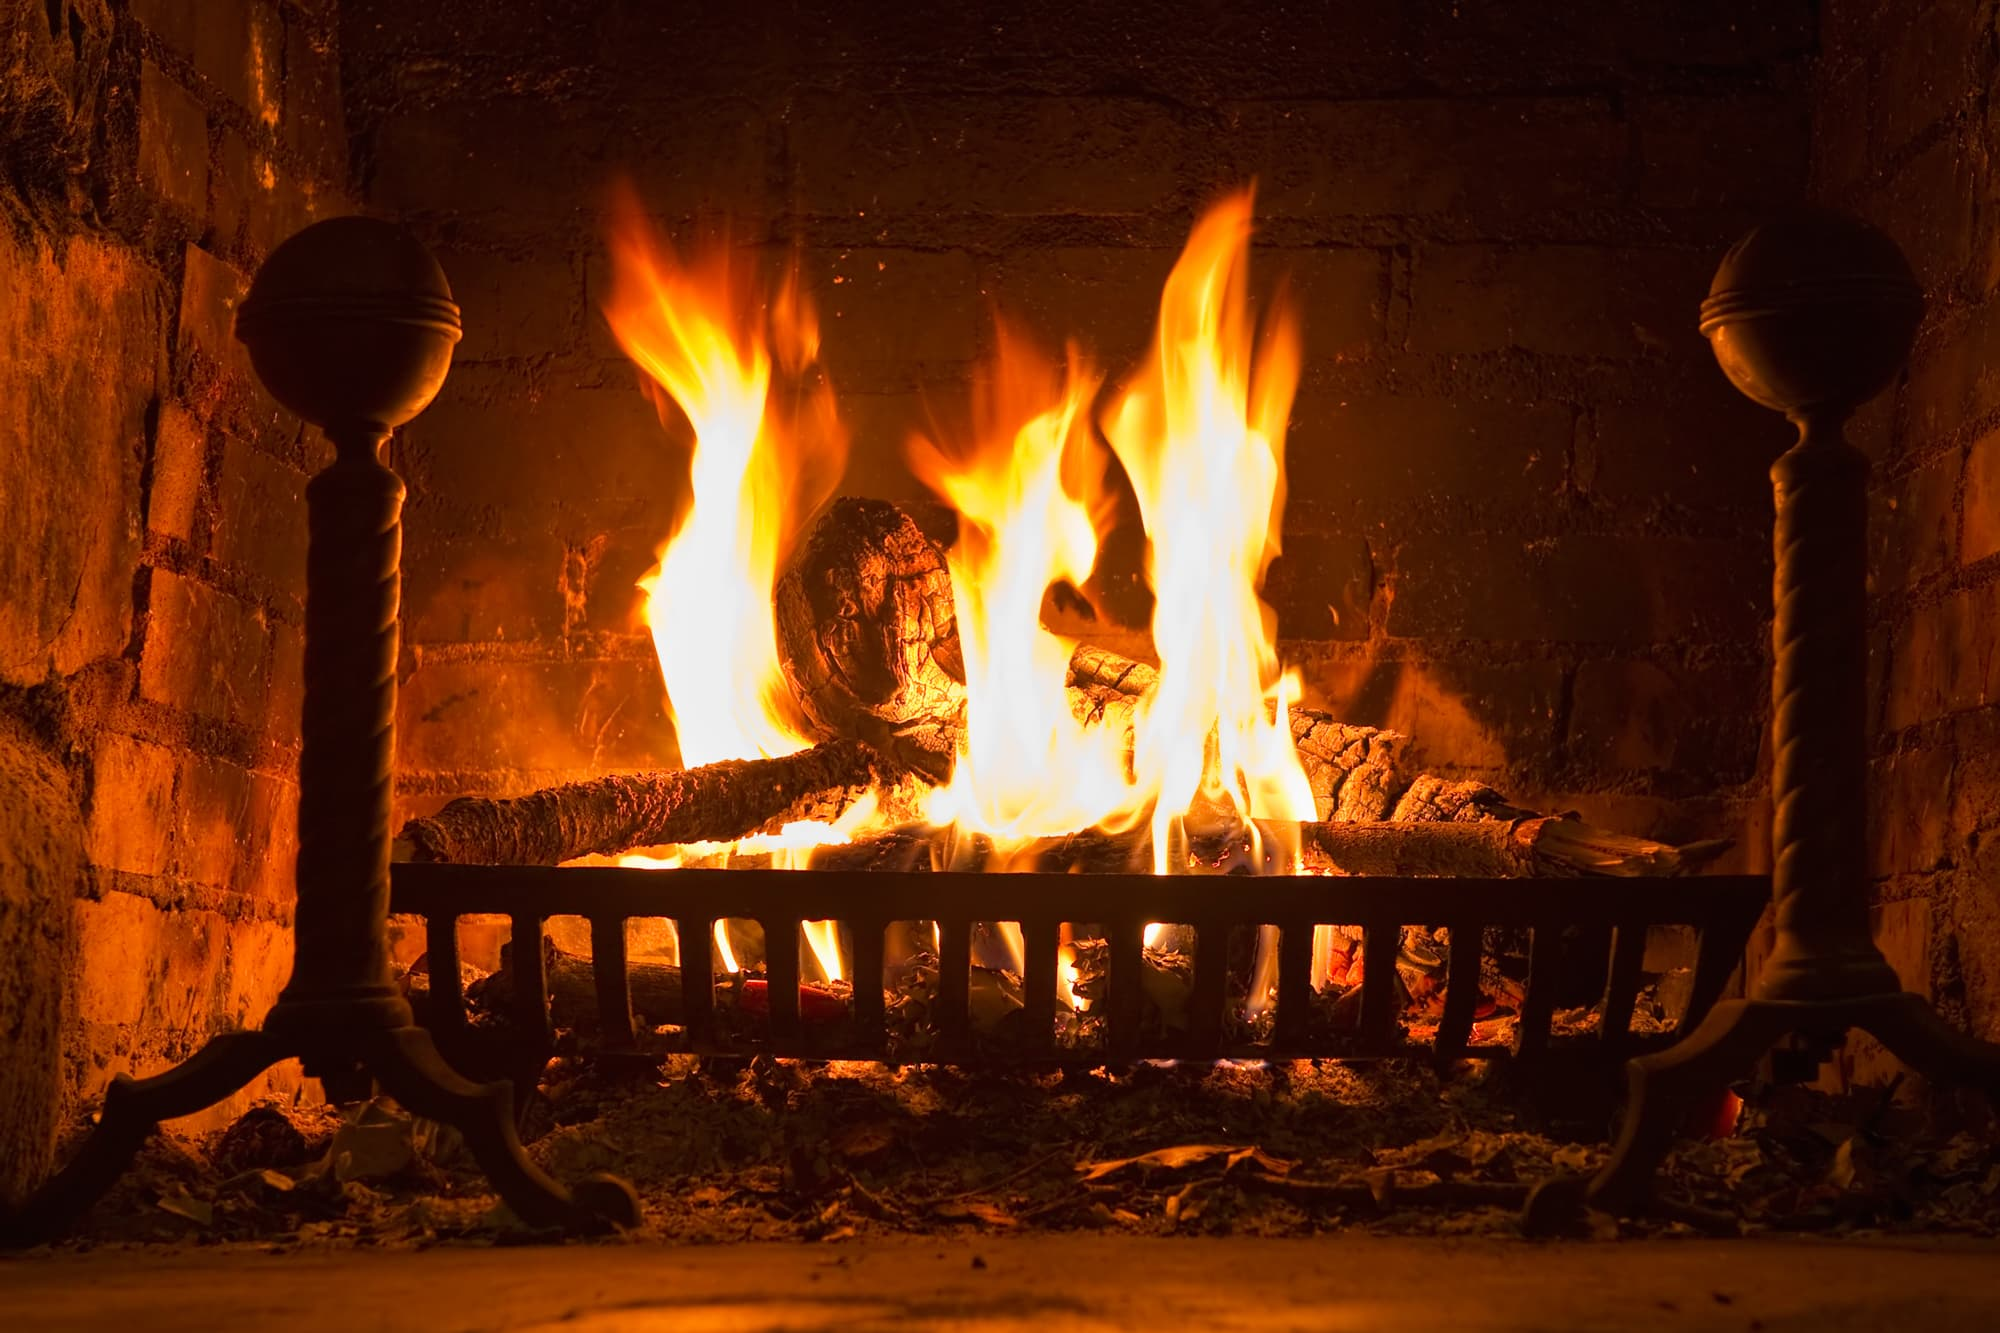 To burn less money, consider heating with wood